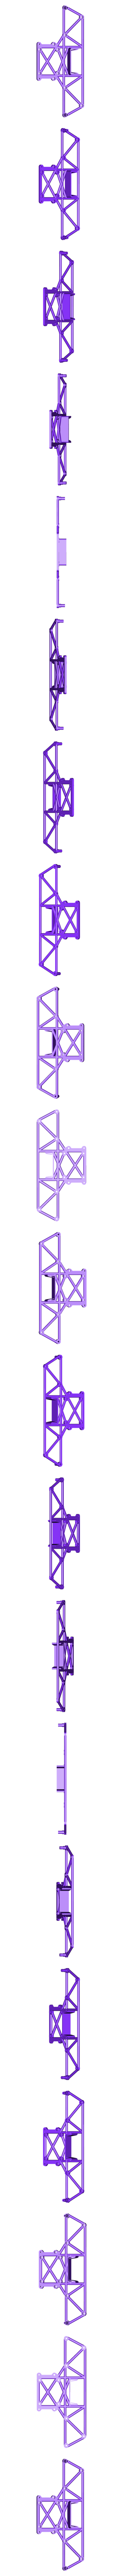 Frame01.stl Download free STL file Fully printable Monster Truck • 3D printer design, tahustvedt